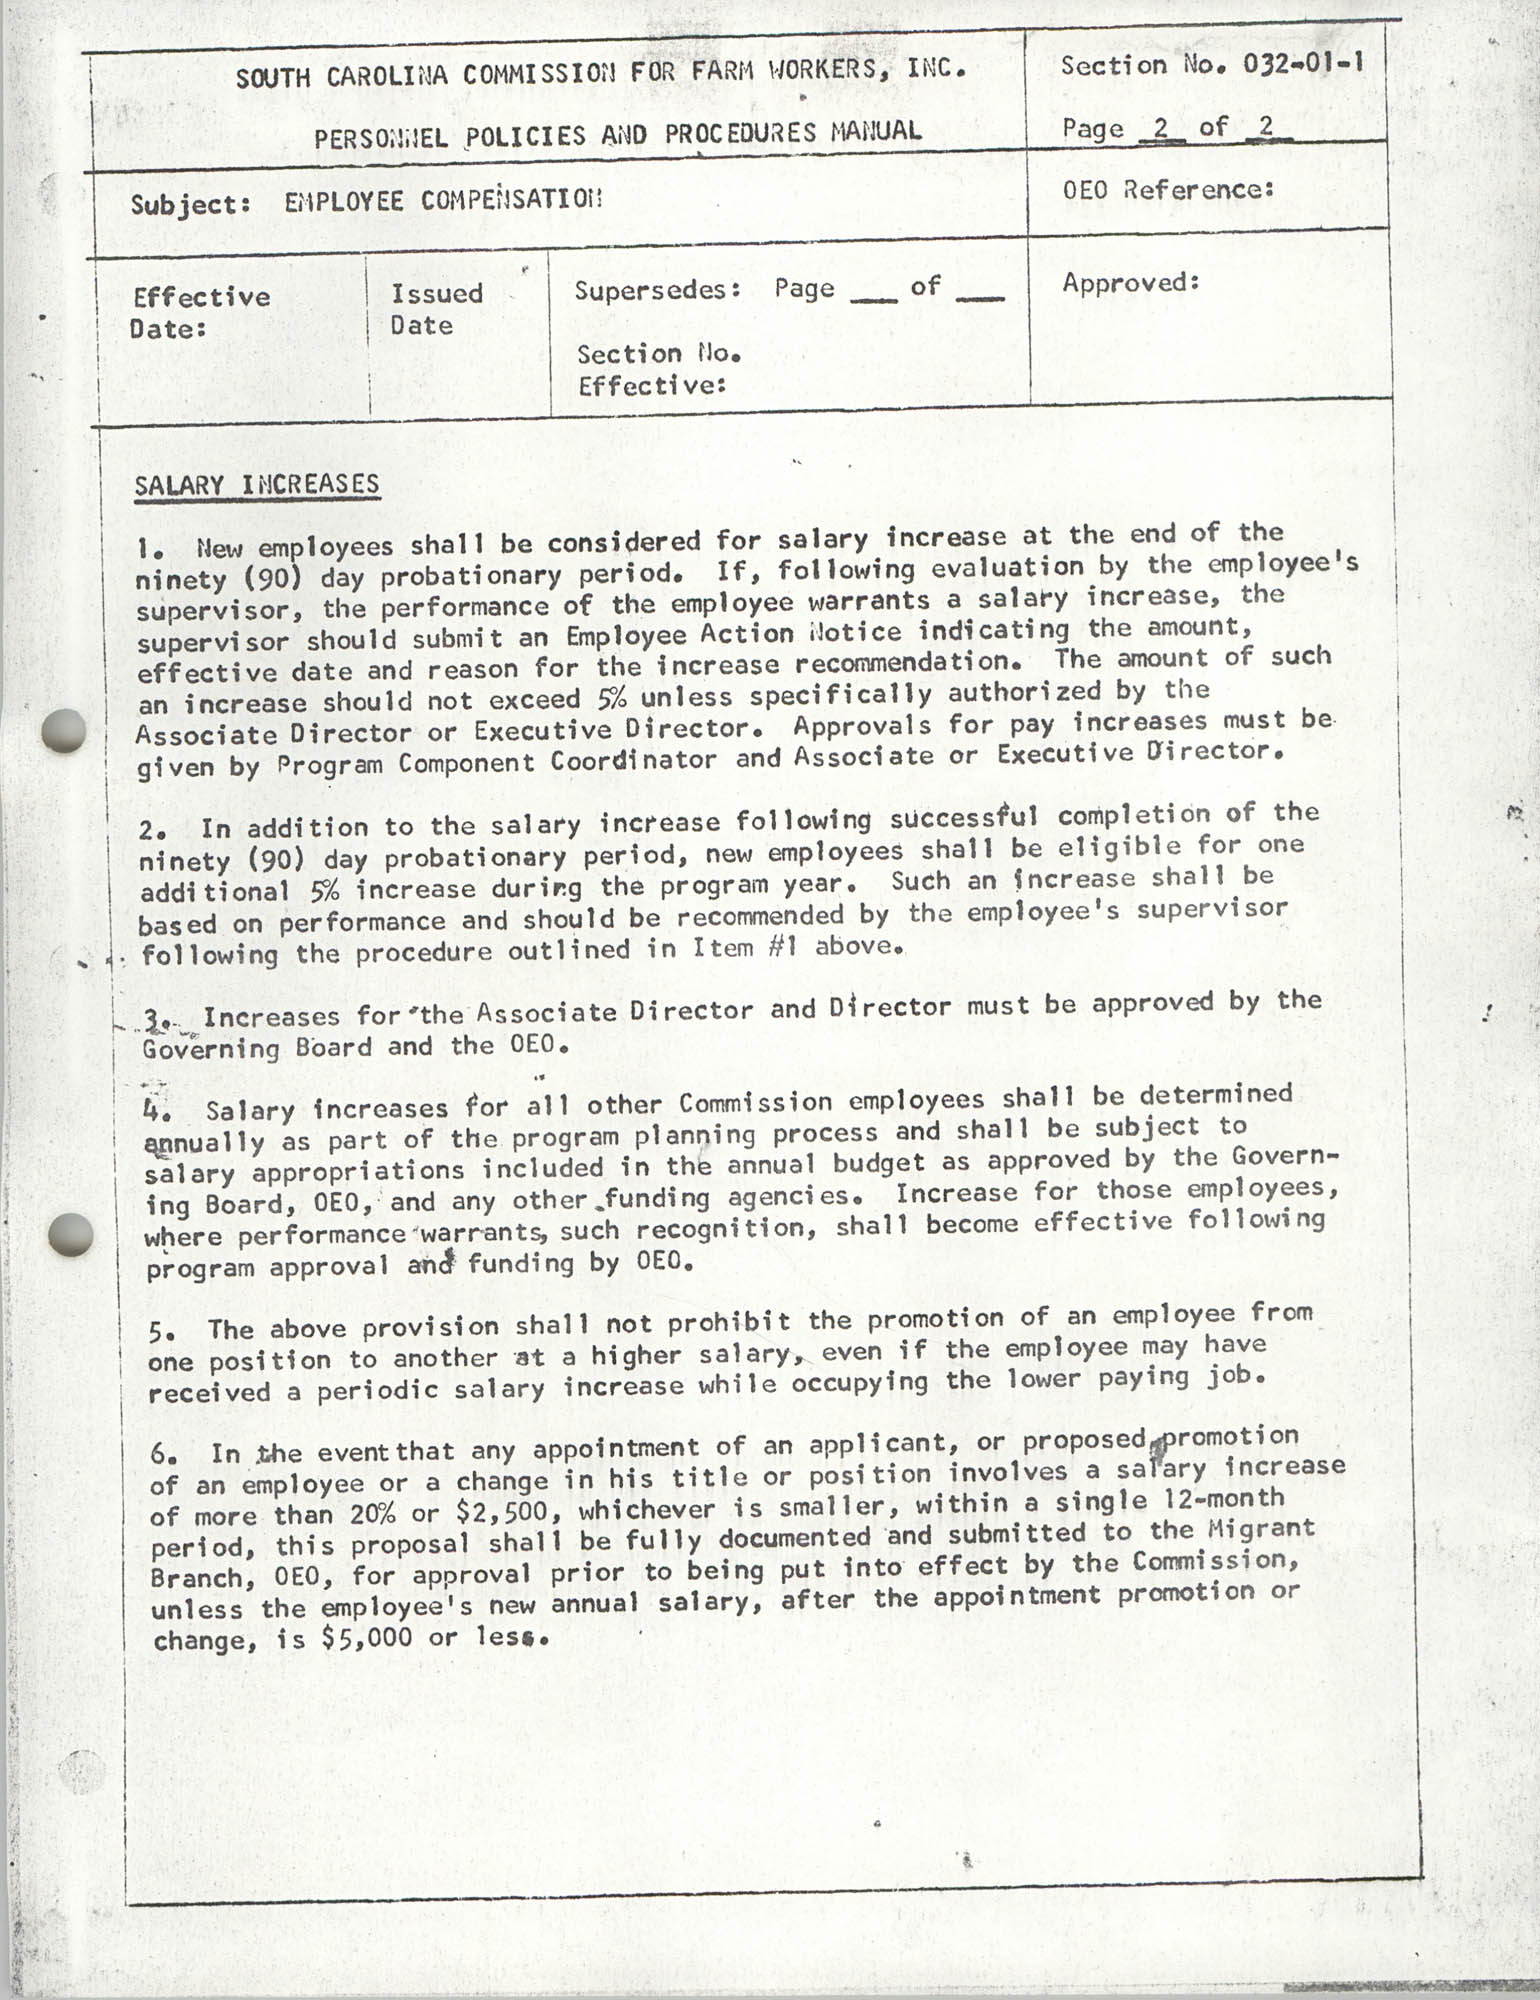 Personnel Policies and Procedures Manual, Section No. 032-01-1, Page 2